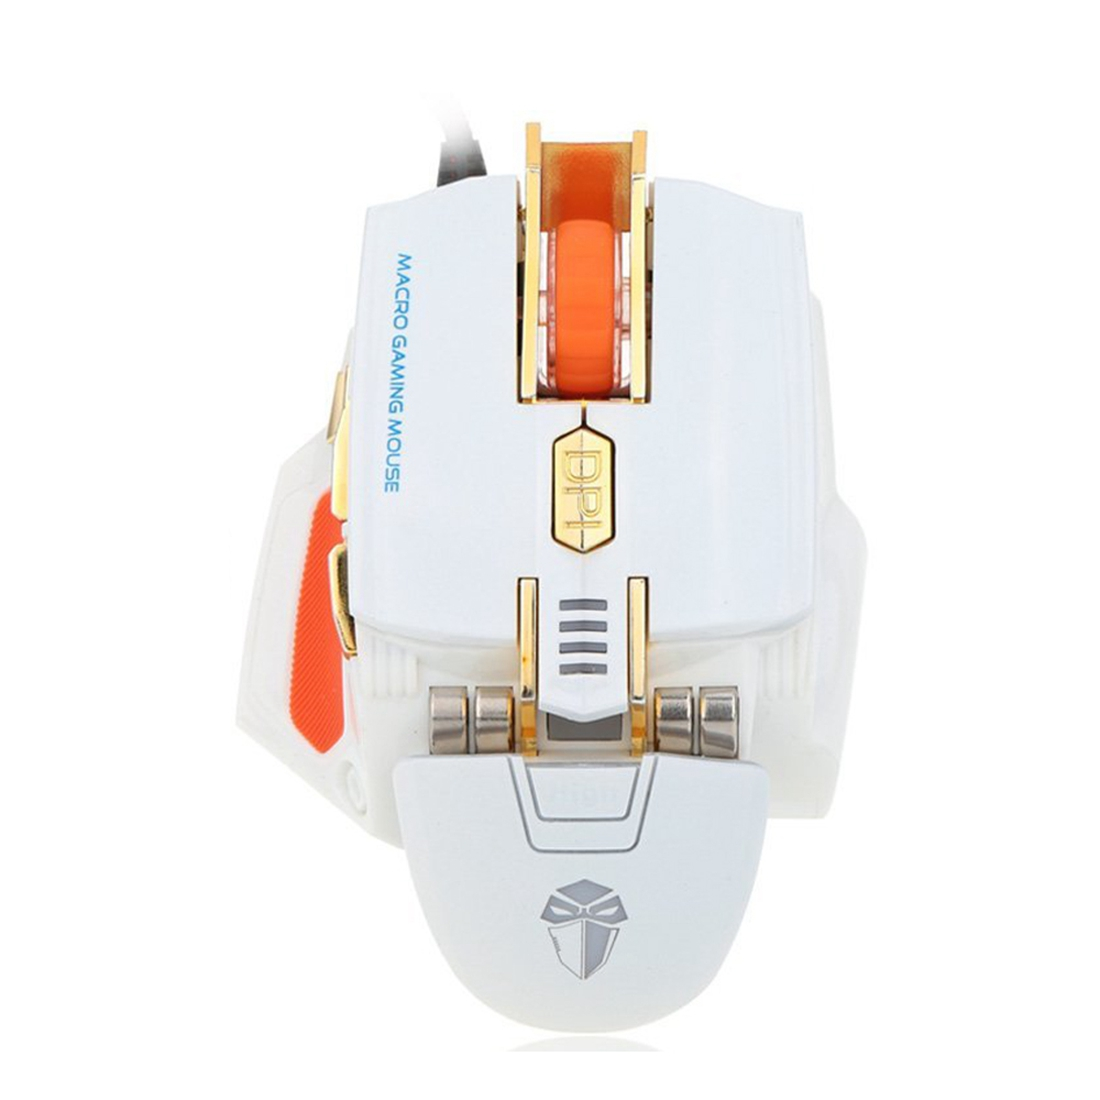 LUOM Mouse Gaming Optical Gaming Mouse 4000dpi with wire 7 Keys to Macro Adjustable Registration for PC Computer white ...